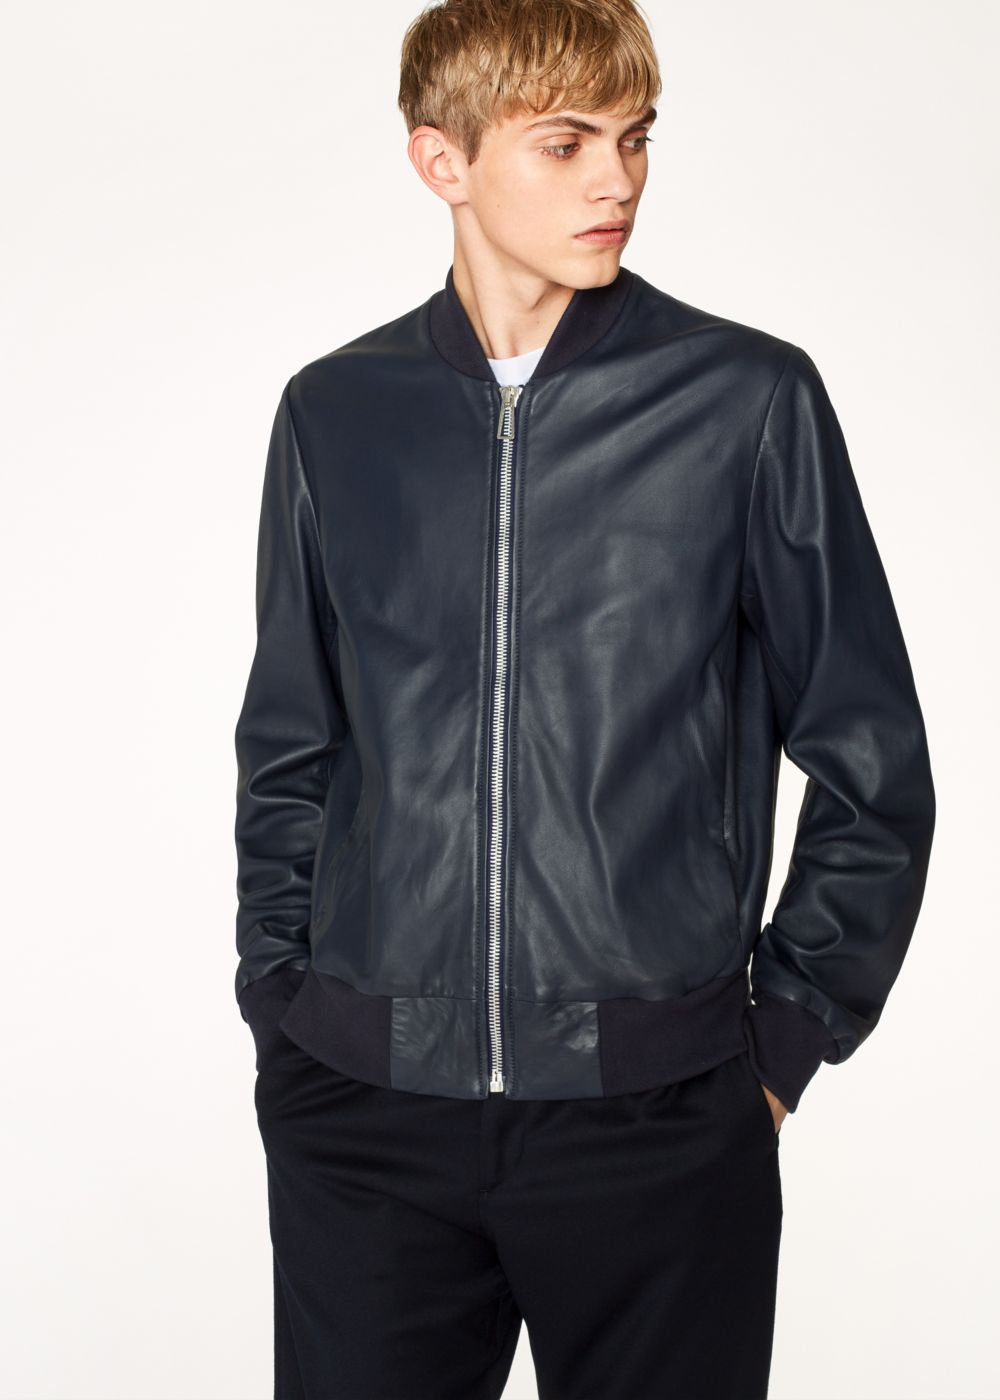 Paul Smith Men's Dark Navy Leather Bomber Jacket